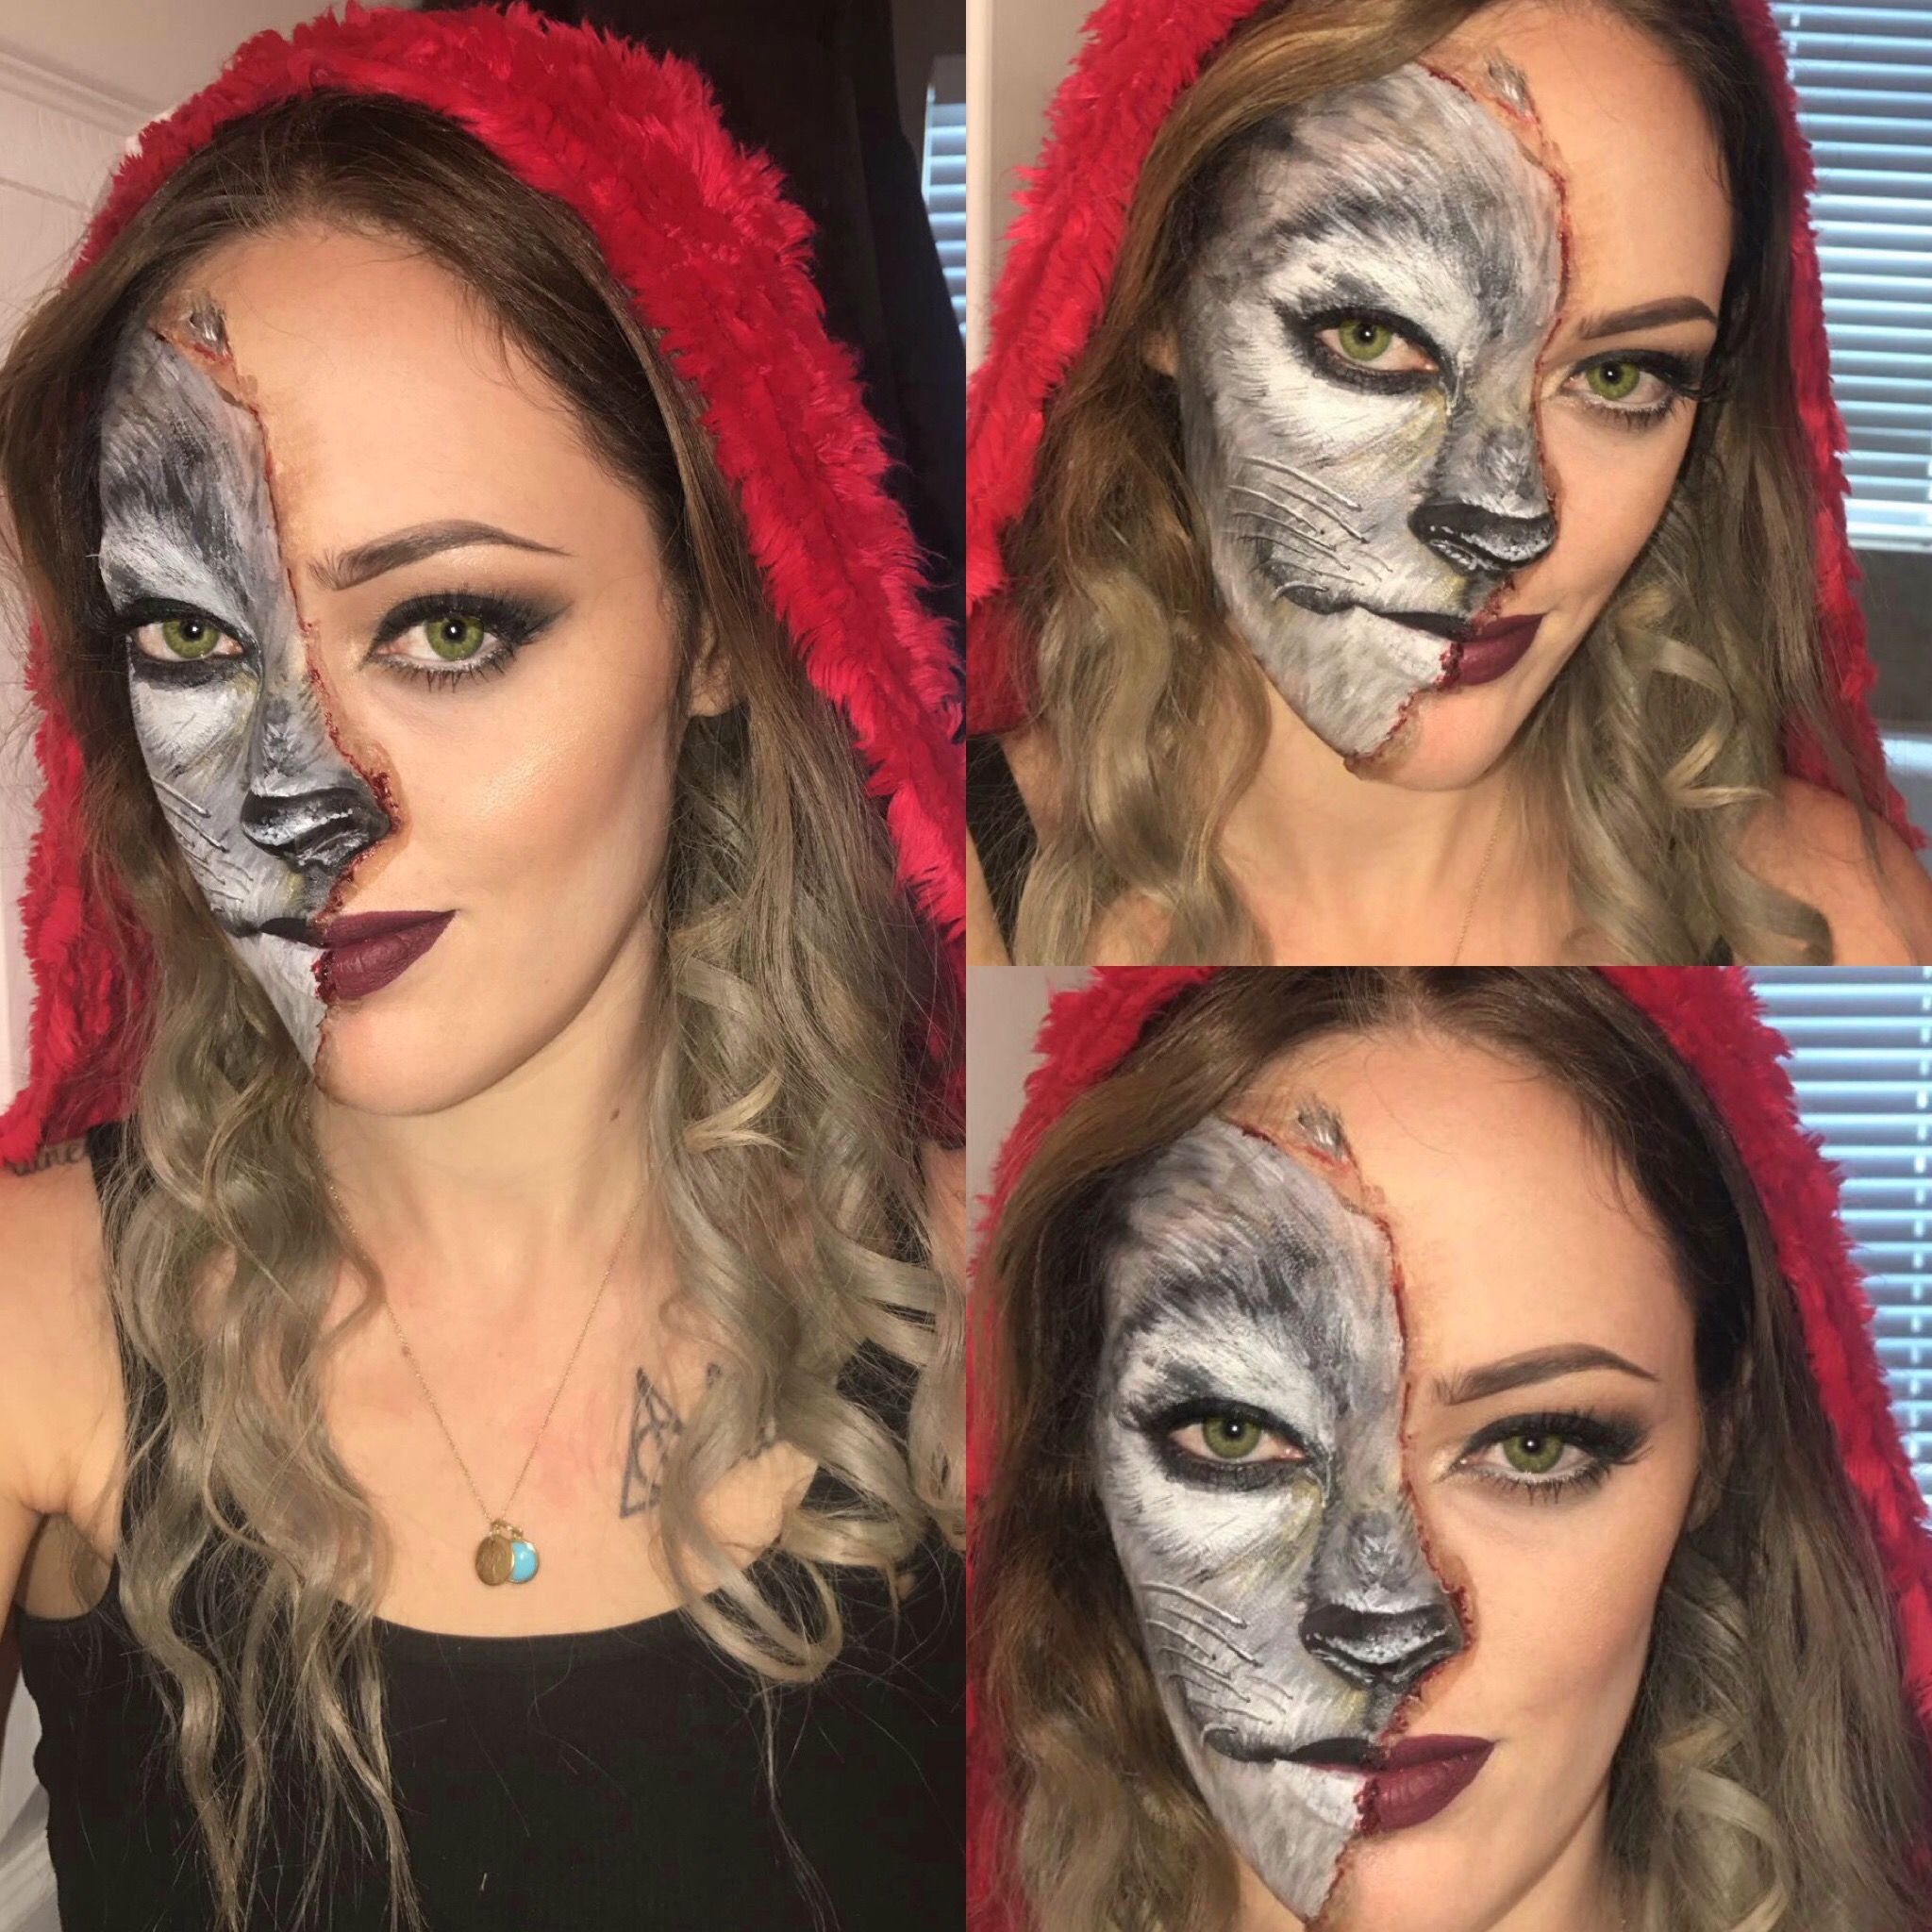 Little Red Riding Hood And The Big Bad Wolf Makeup And Facepaint Halloween Costumes Makeup Halloween Makeup Inspiration Halloween Makeup